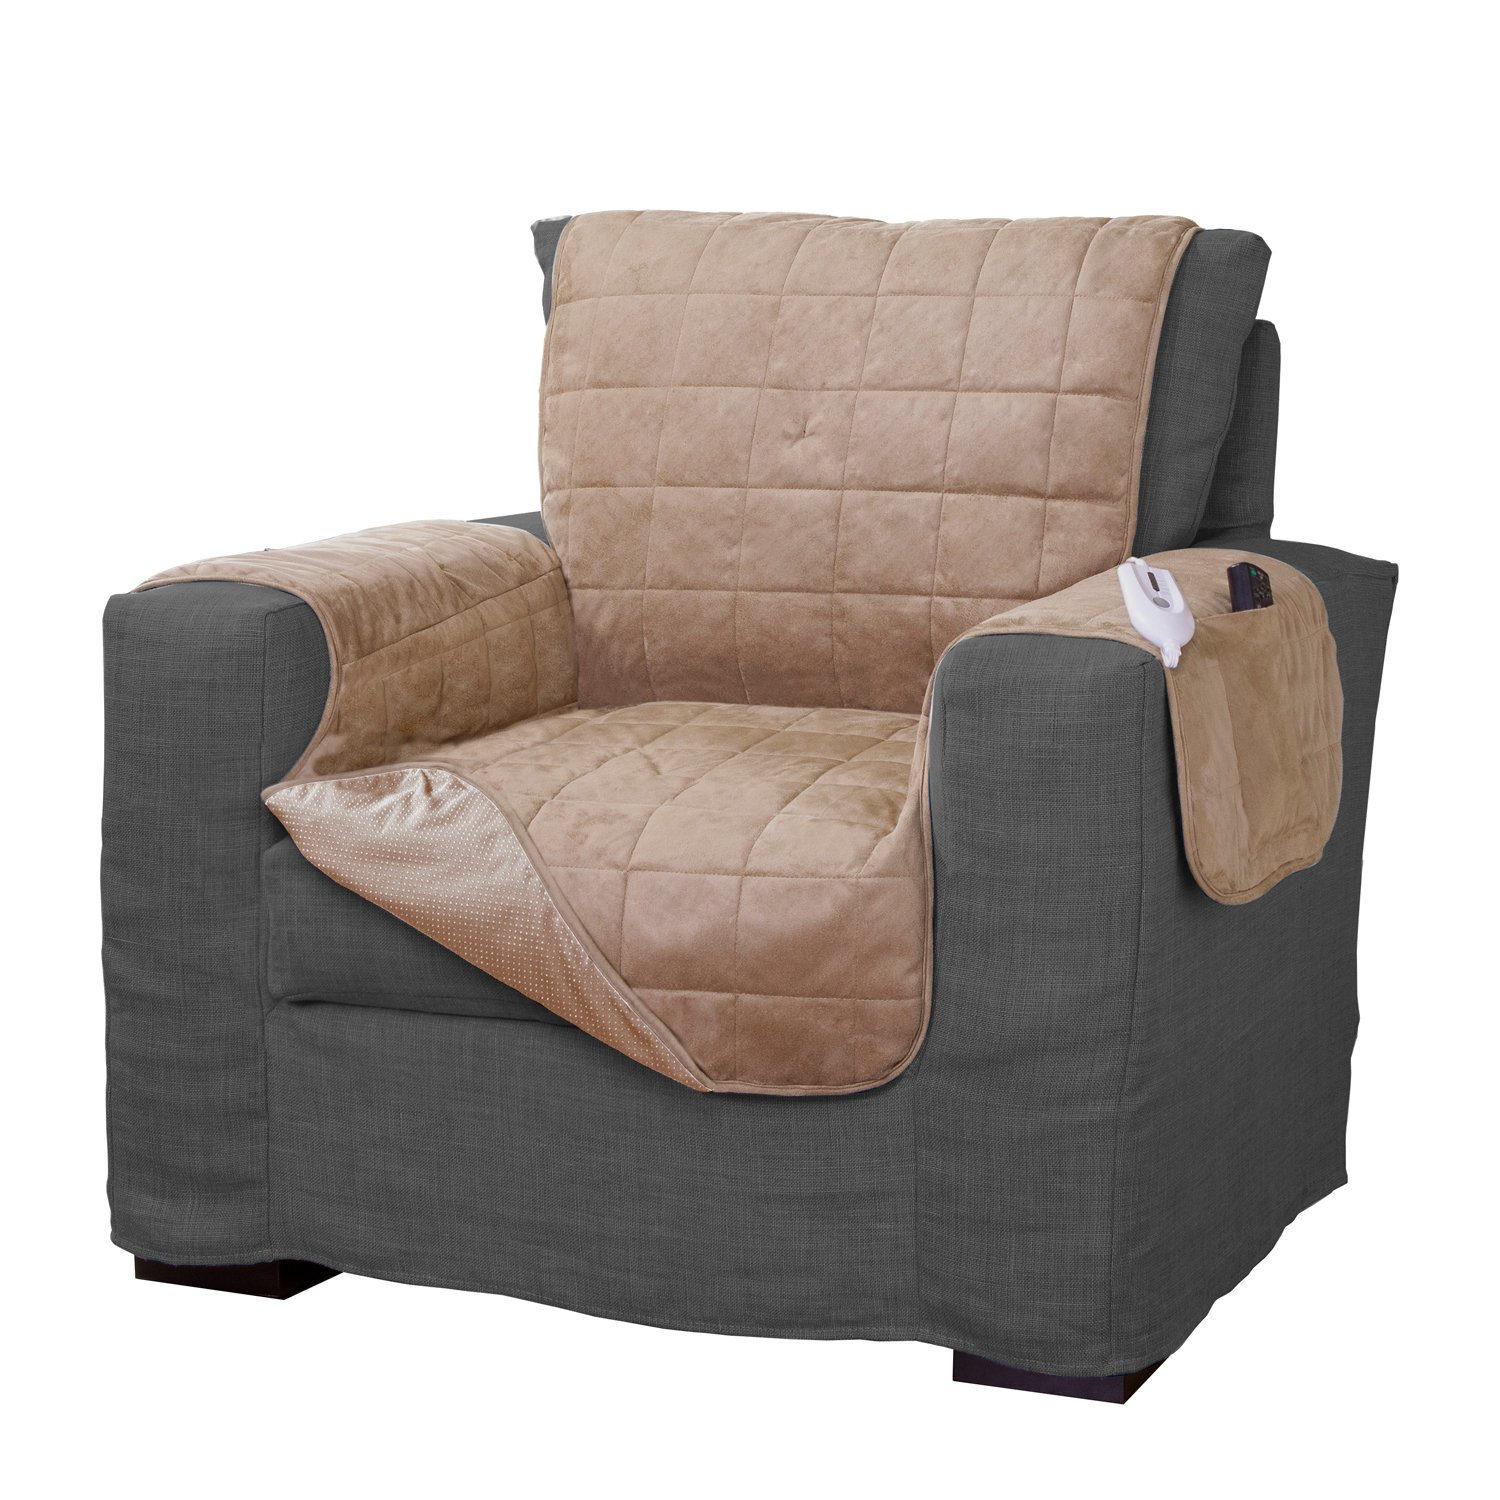 Serta Microsuede Diamond Quilted Electric Warming Furniture Chair Protector, Camel